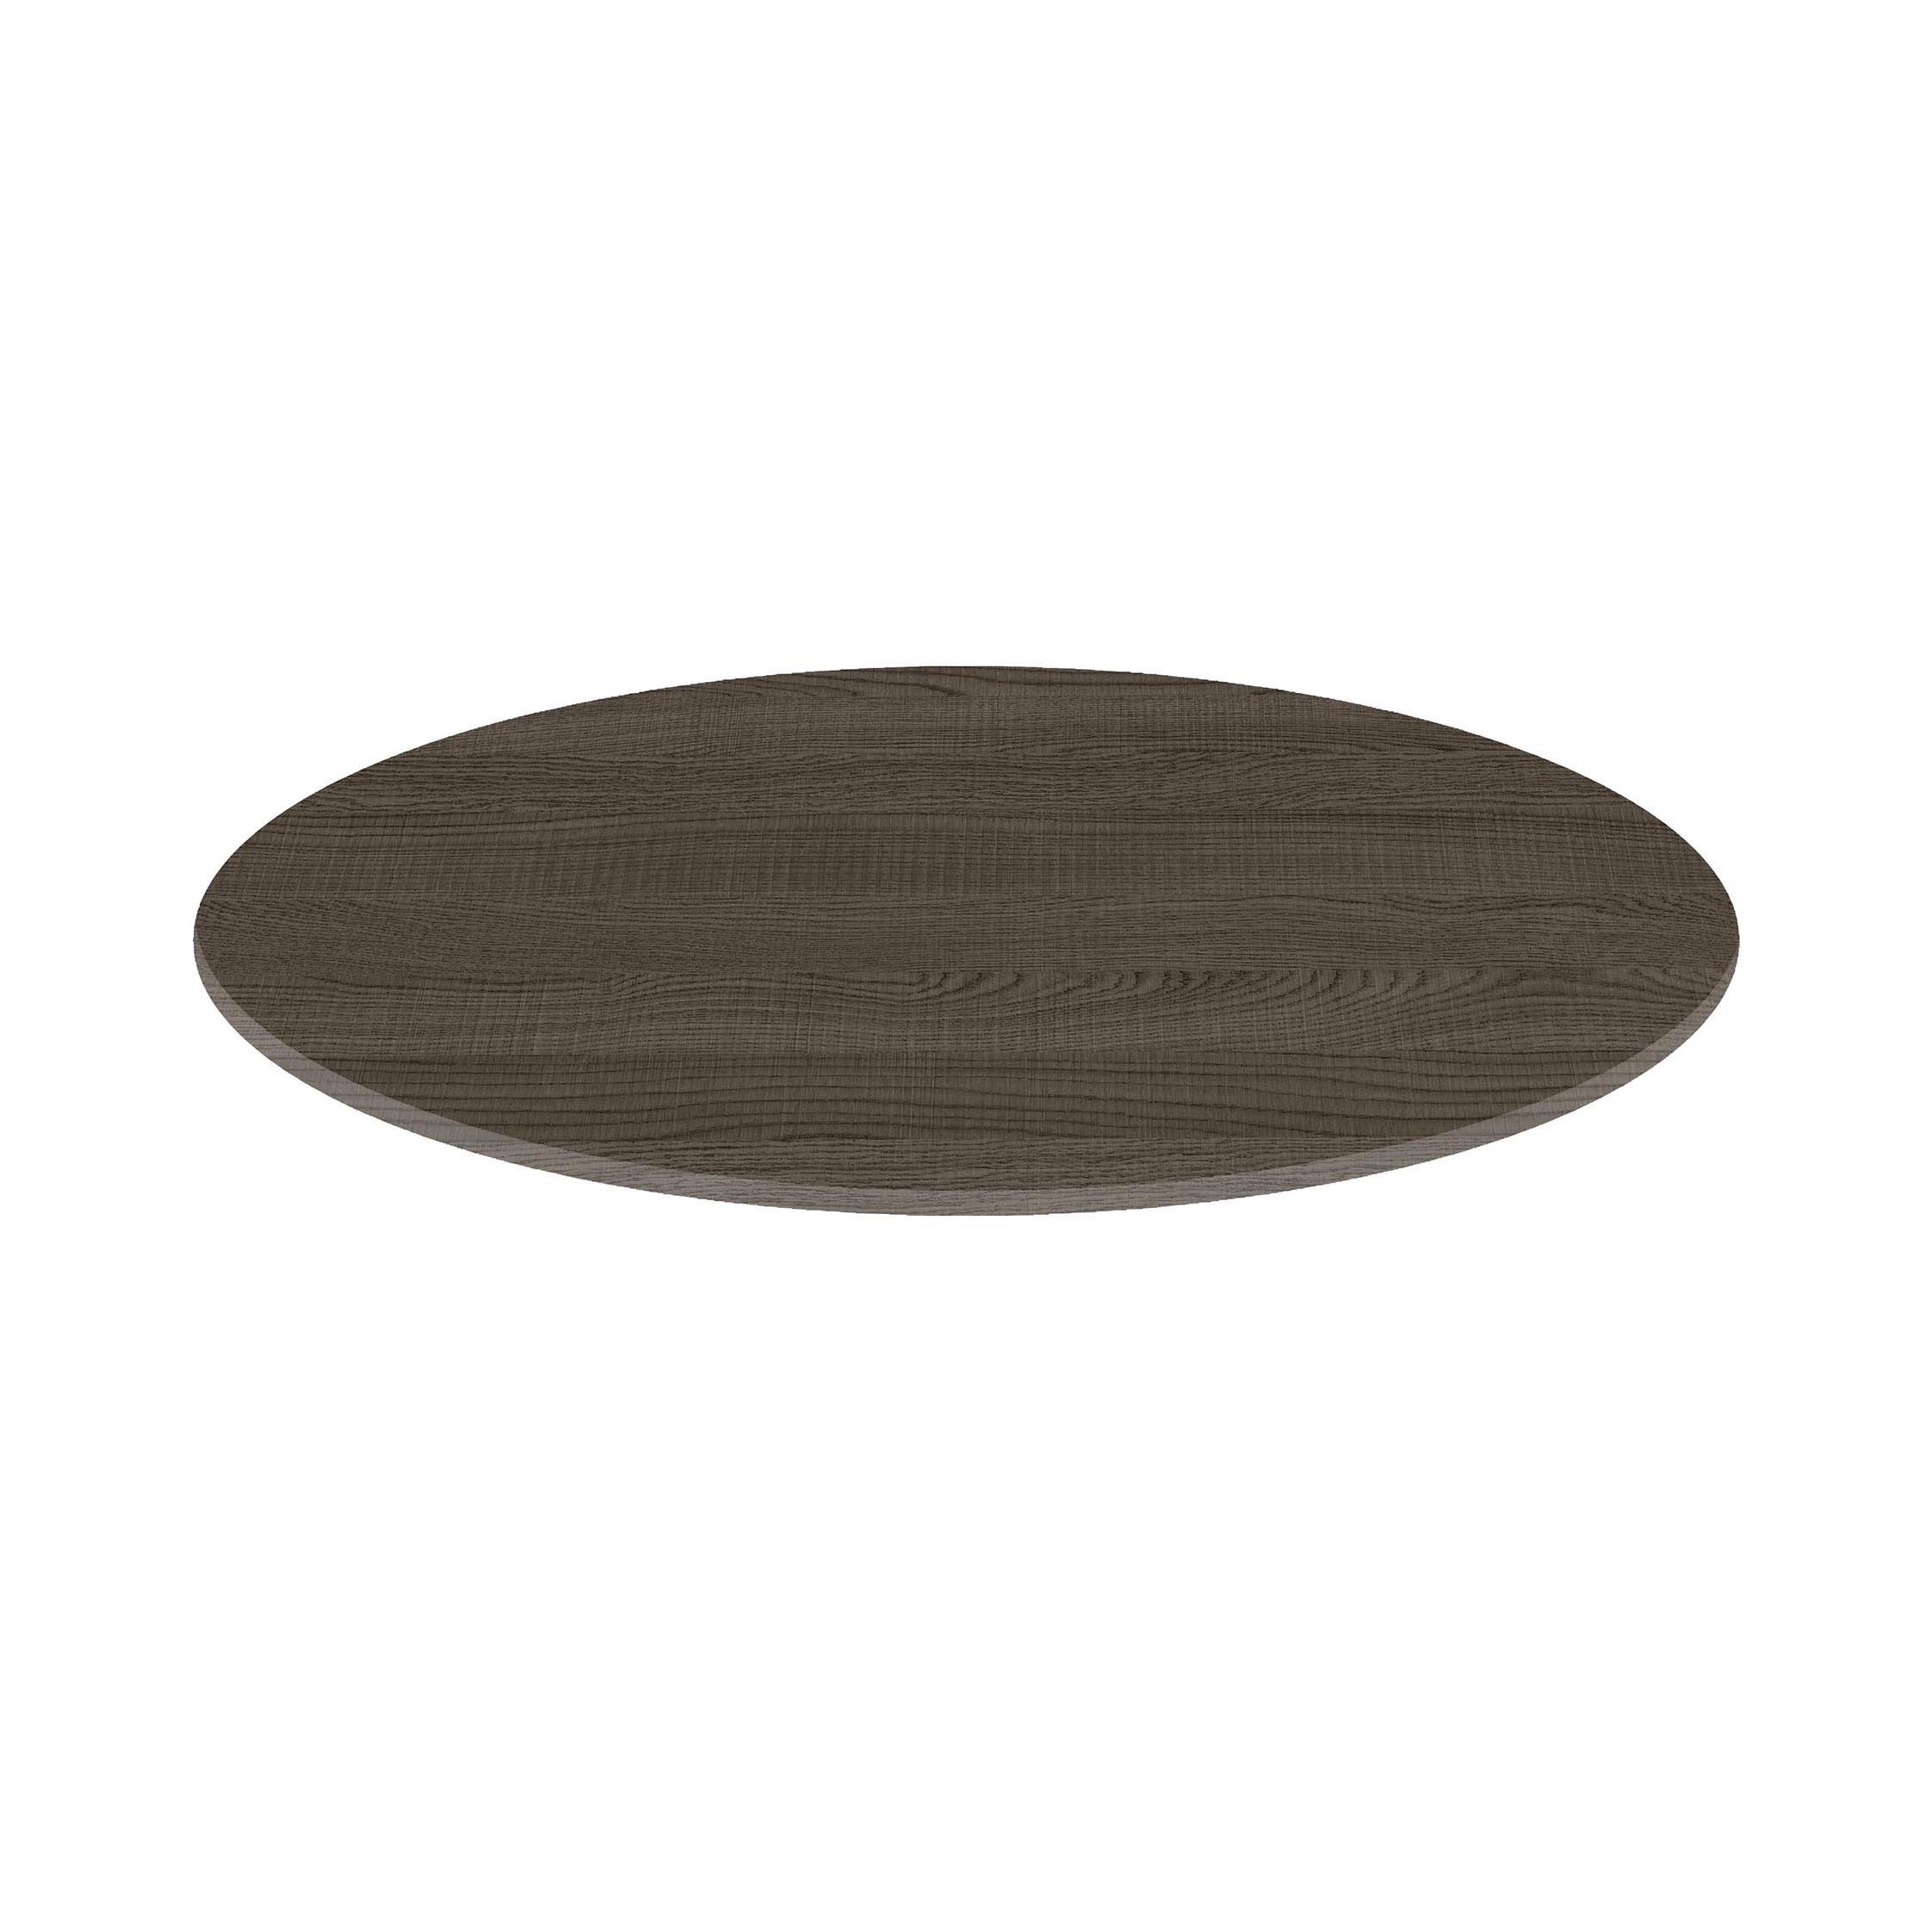 Round table top 70cm - Dark oak